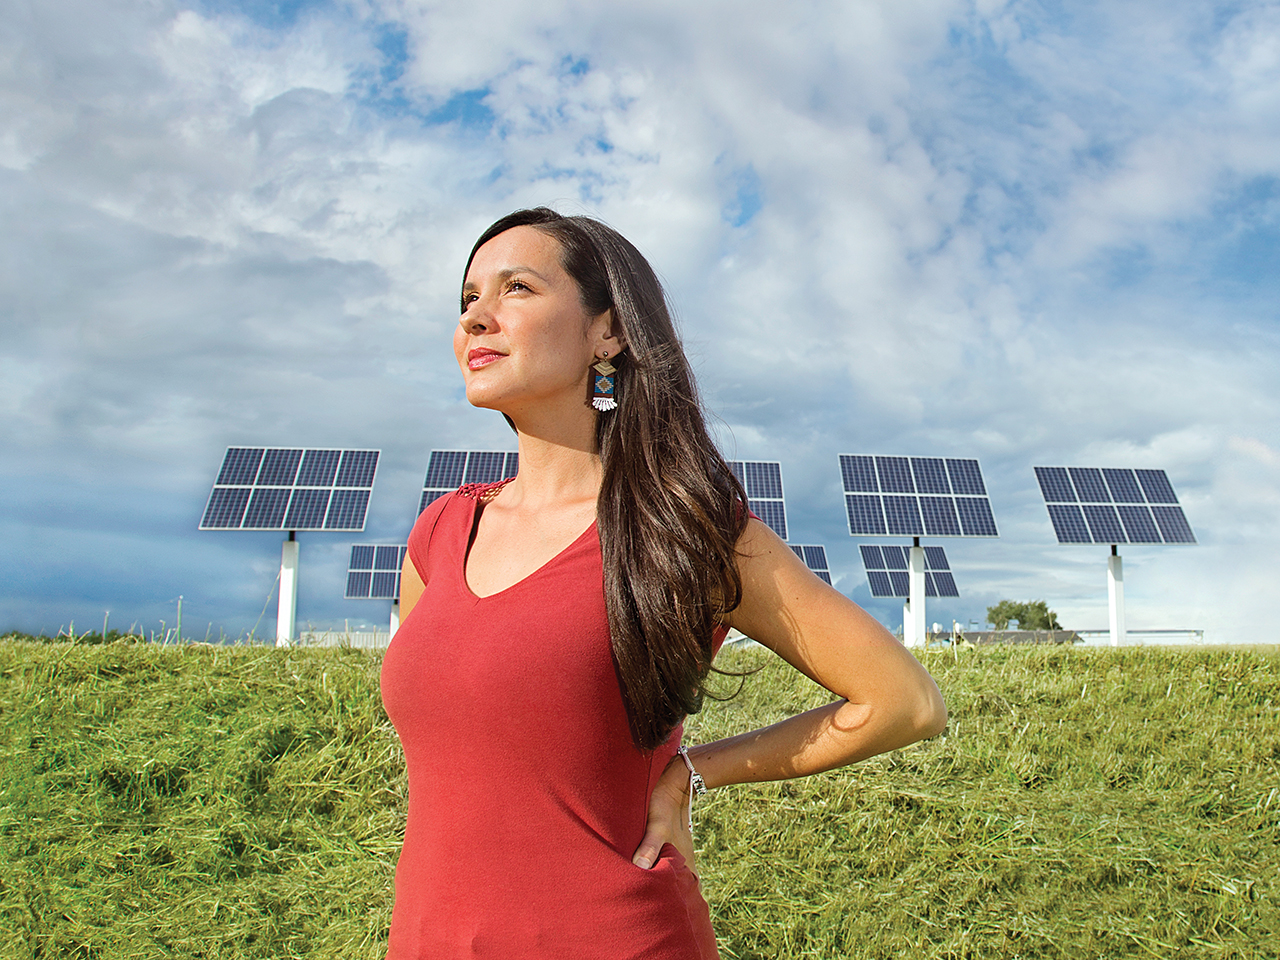 Entrepreneur Melina Laboucan-Massimo stands in front of outdoor solar panels